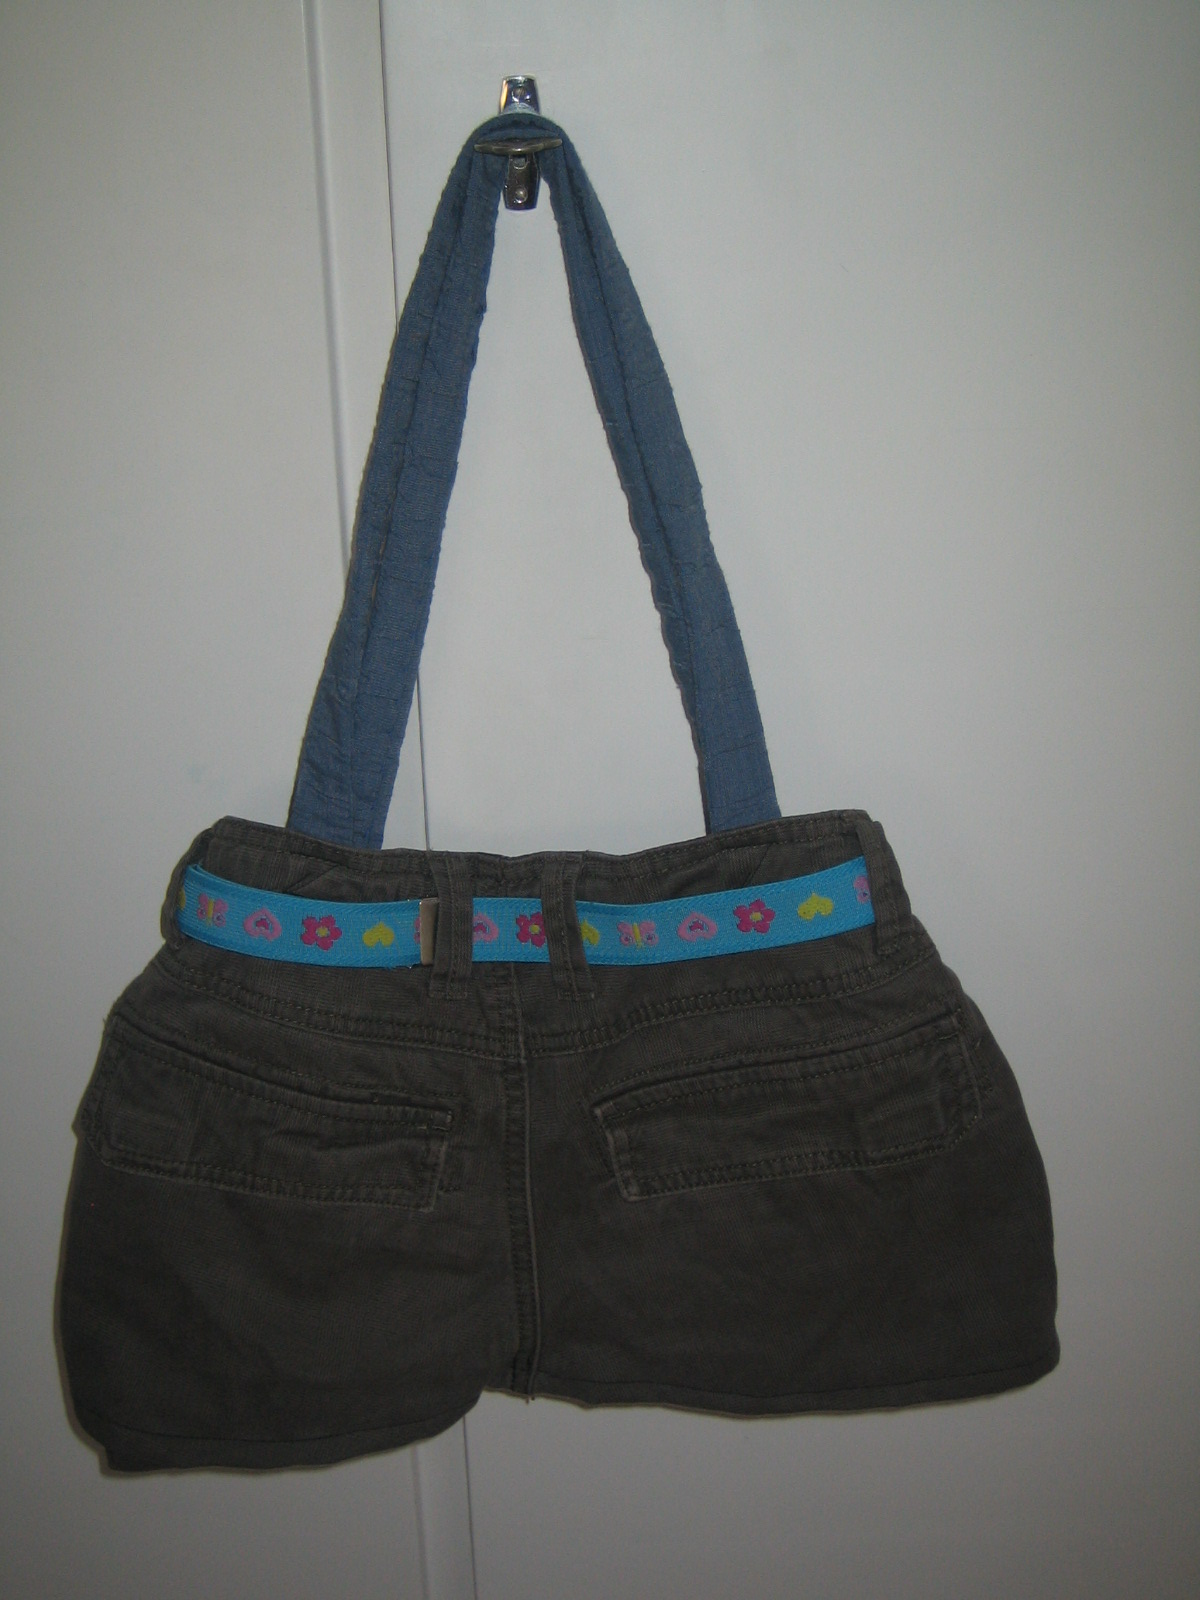 how to make a shoulder bag from old jeans